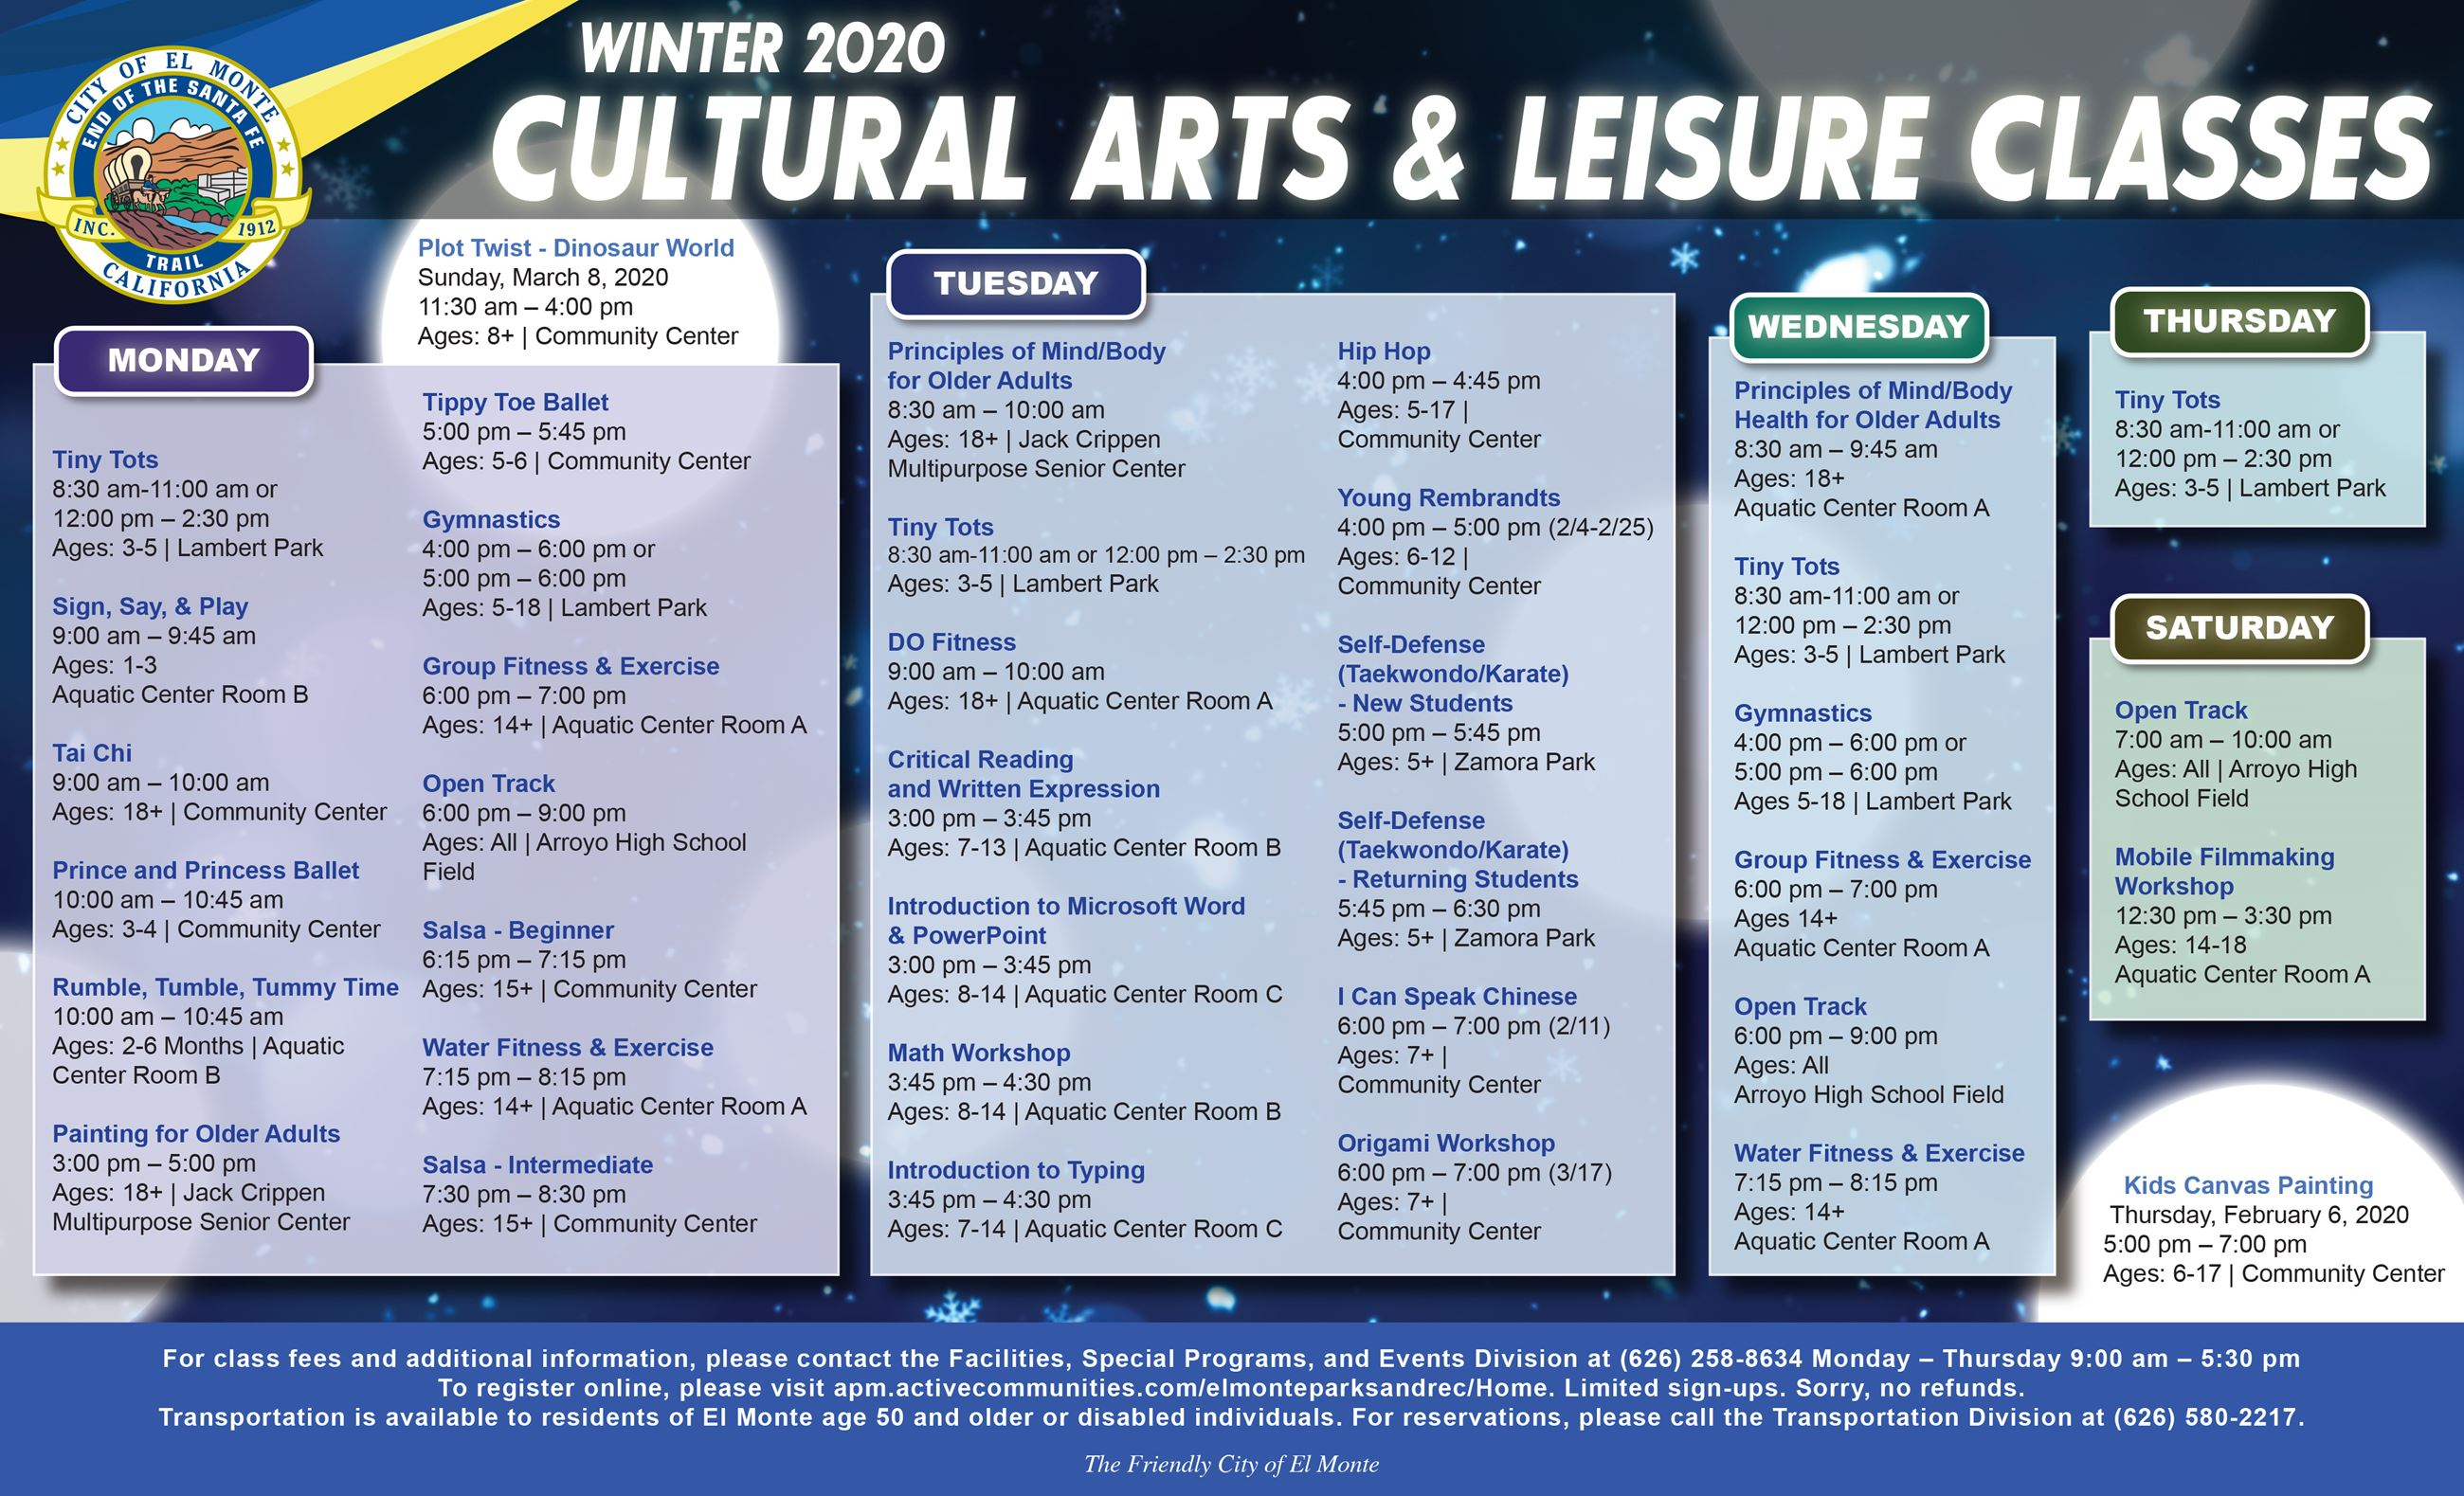 Cultural Arts and Leisure Classes Flyer (Winter 2020) - 111919_edit 11